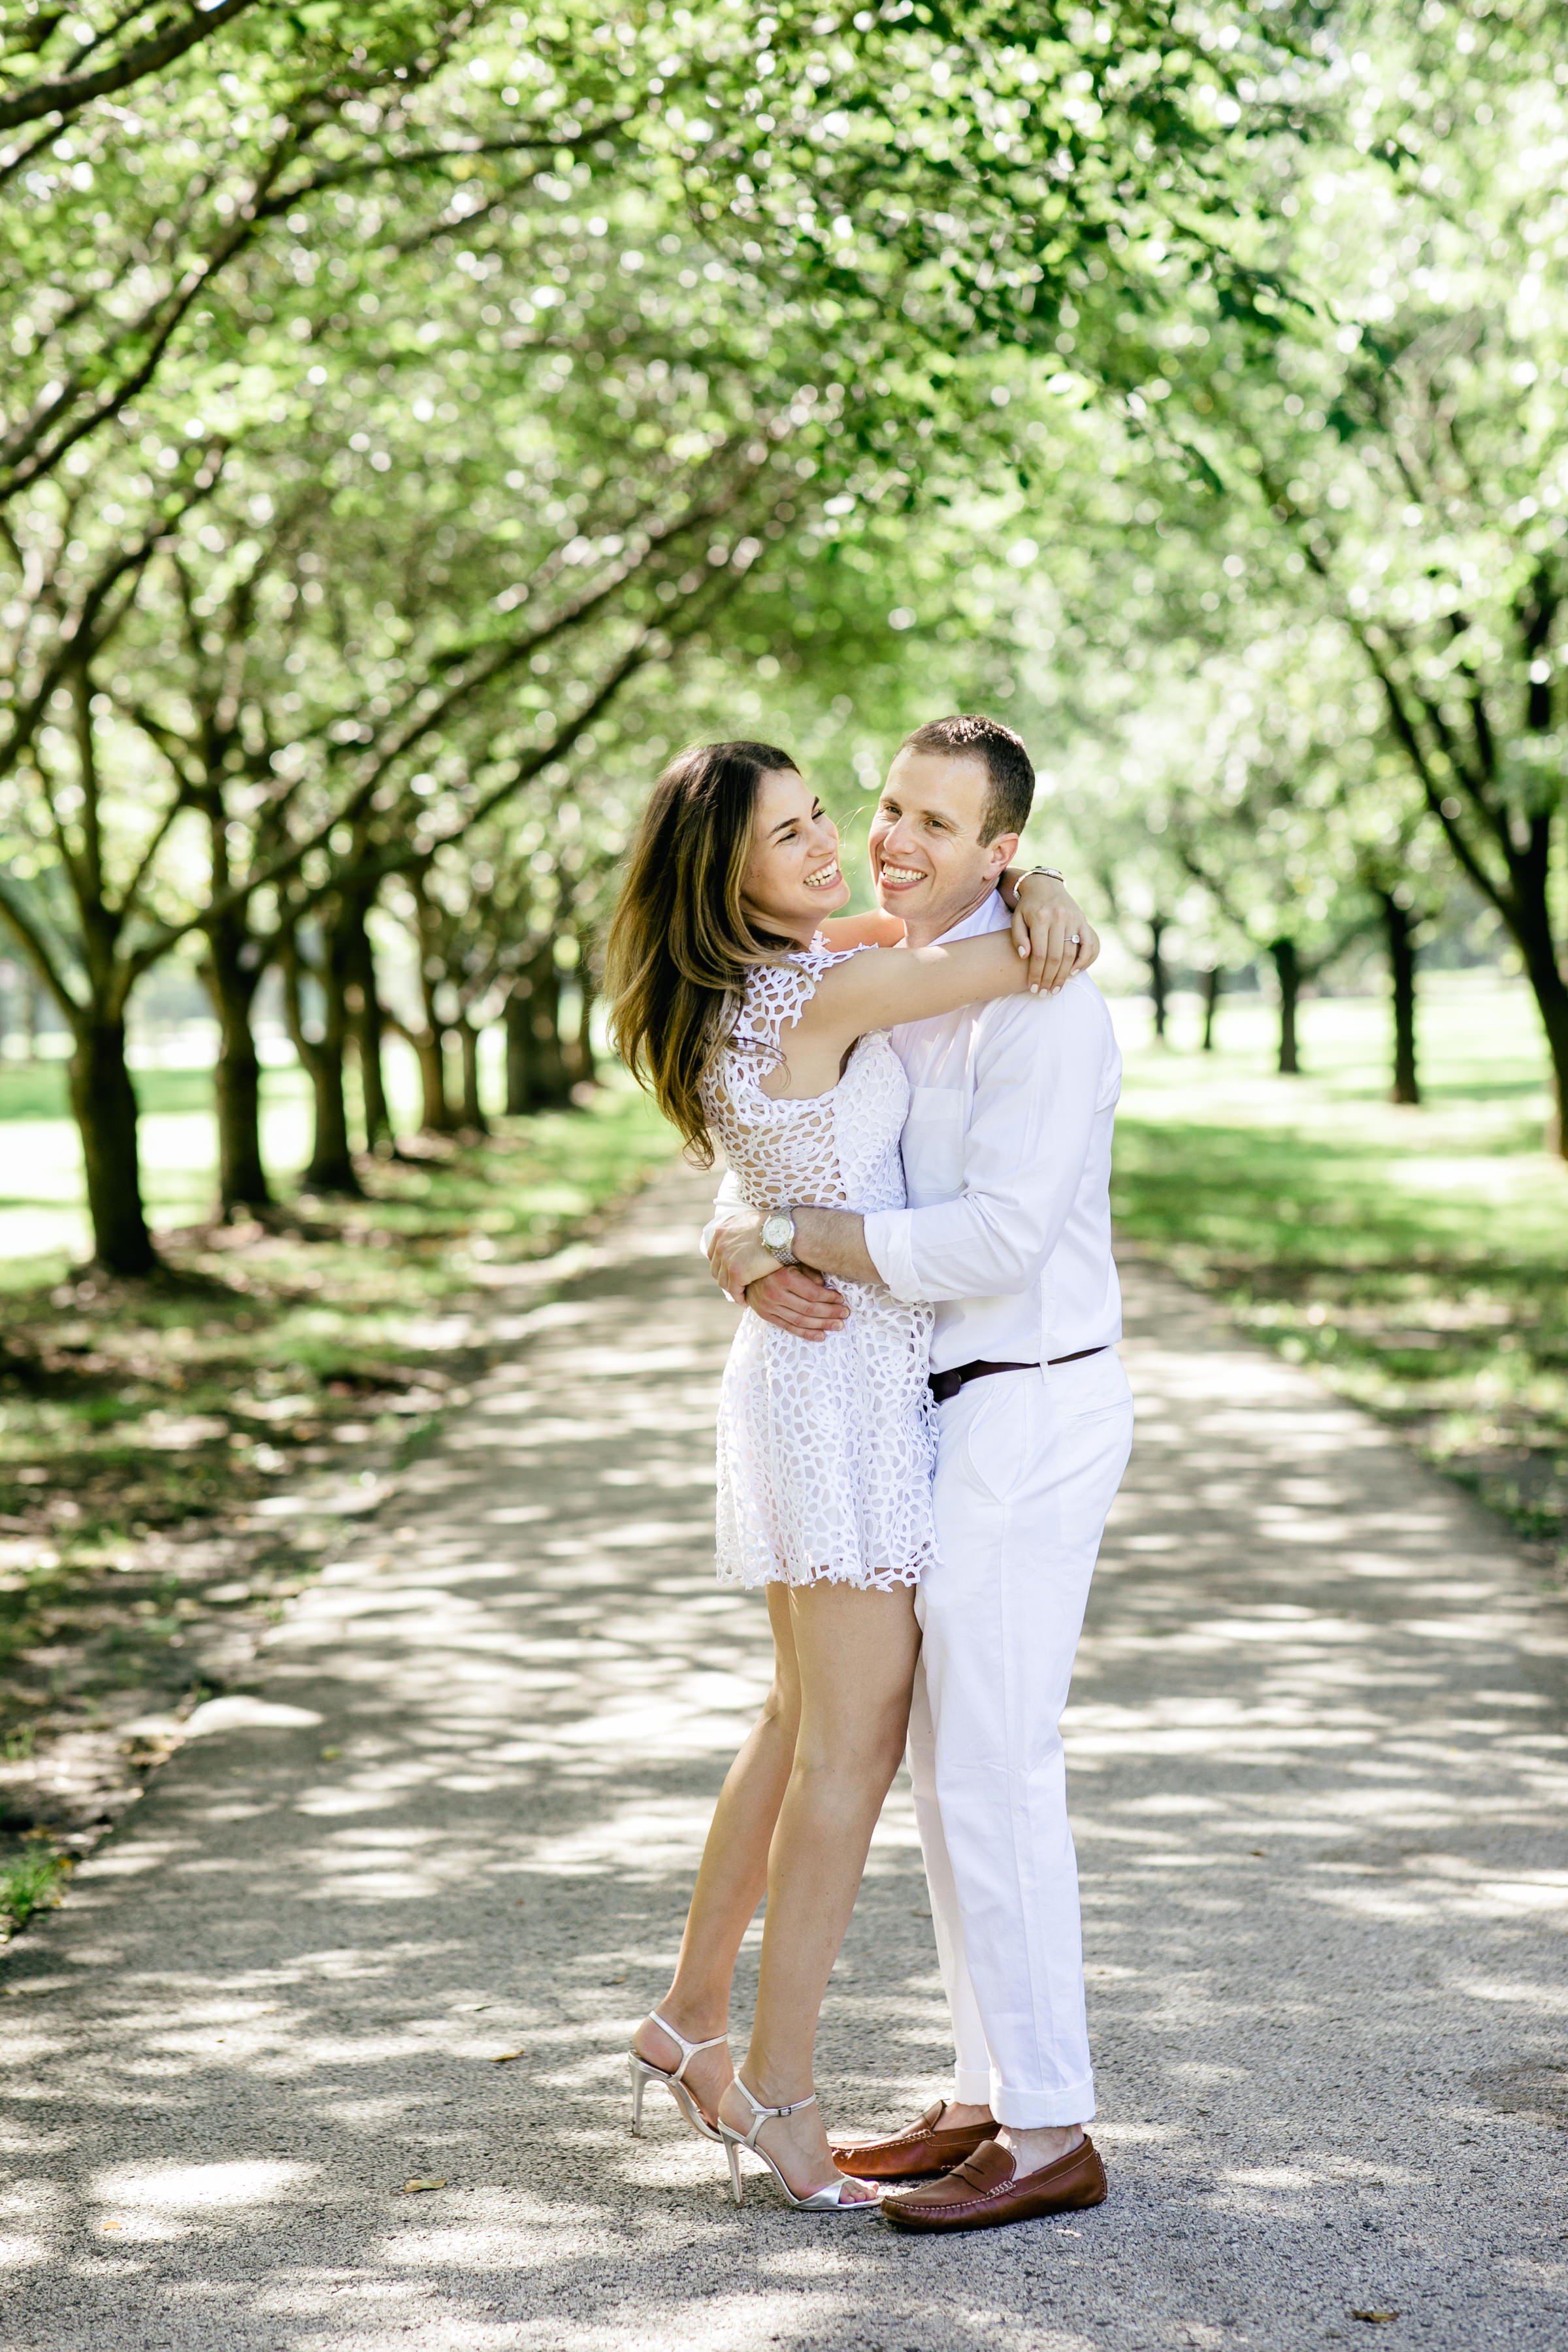 photography-family-natural-candid-engaged-fairmount-philadelphia-wedding-horticultural center-modern-lifestyle-18.JPG